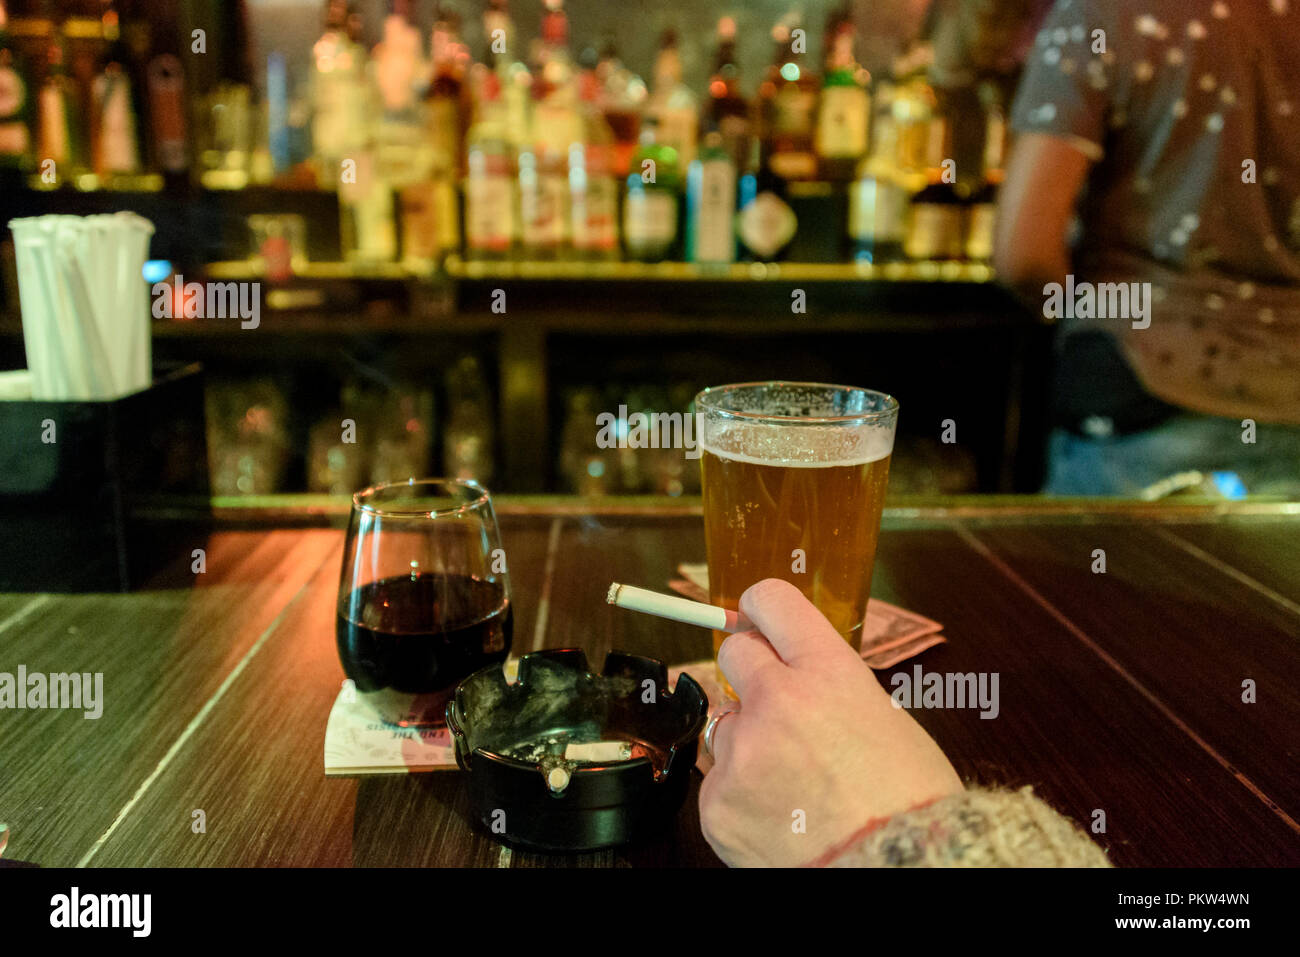 04-2018 New York, USA. Smoking is still permitted in some bars in New York City. Photo: © Simon Grosset - Stock Image